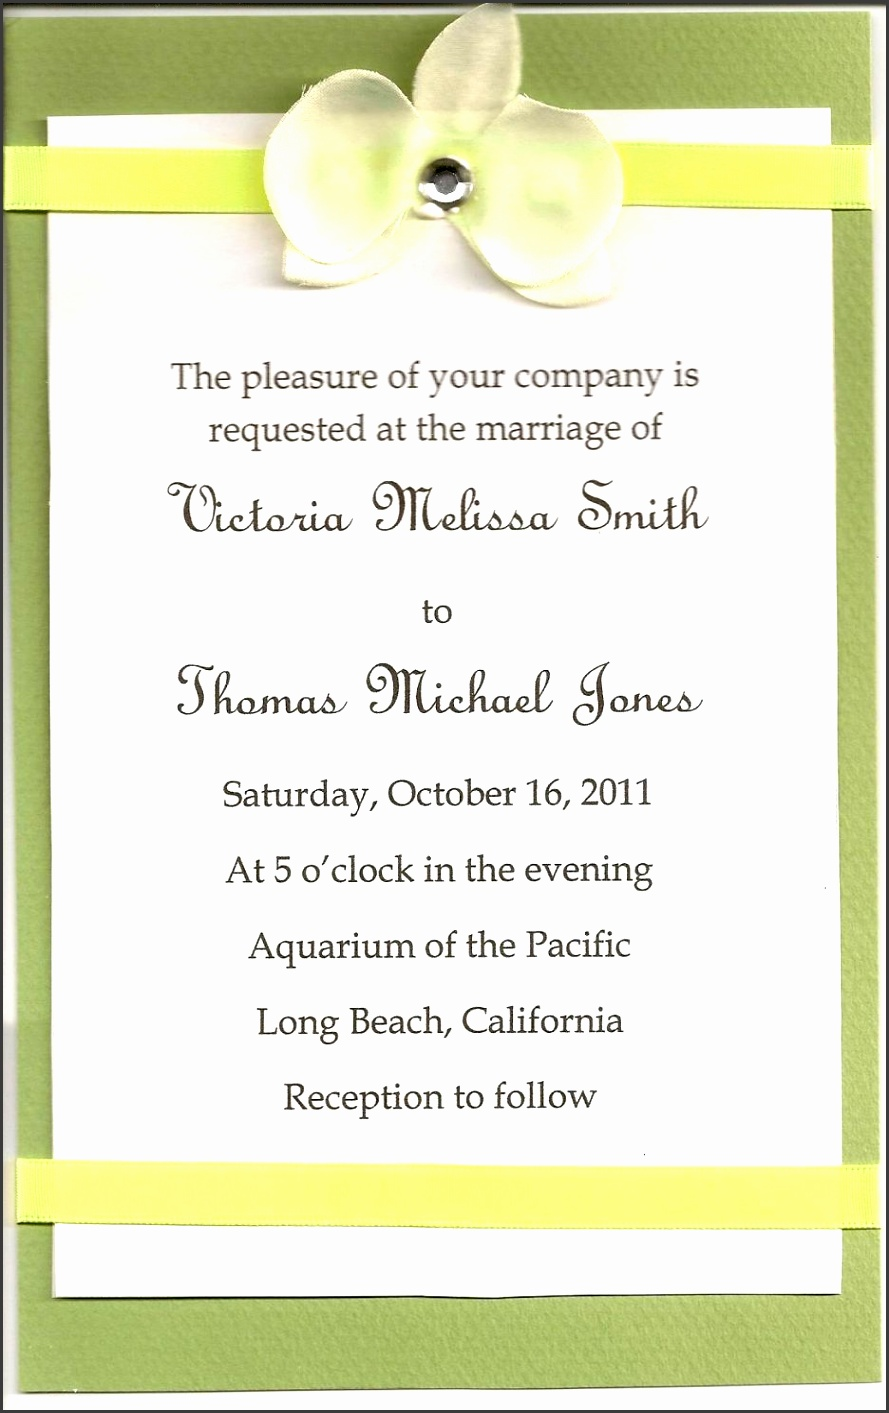 40 images details title wedding invitation wording less formal 2 height